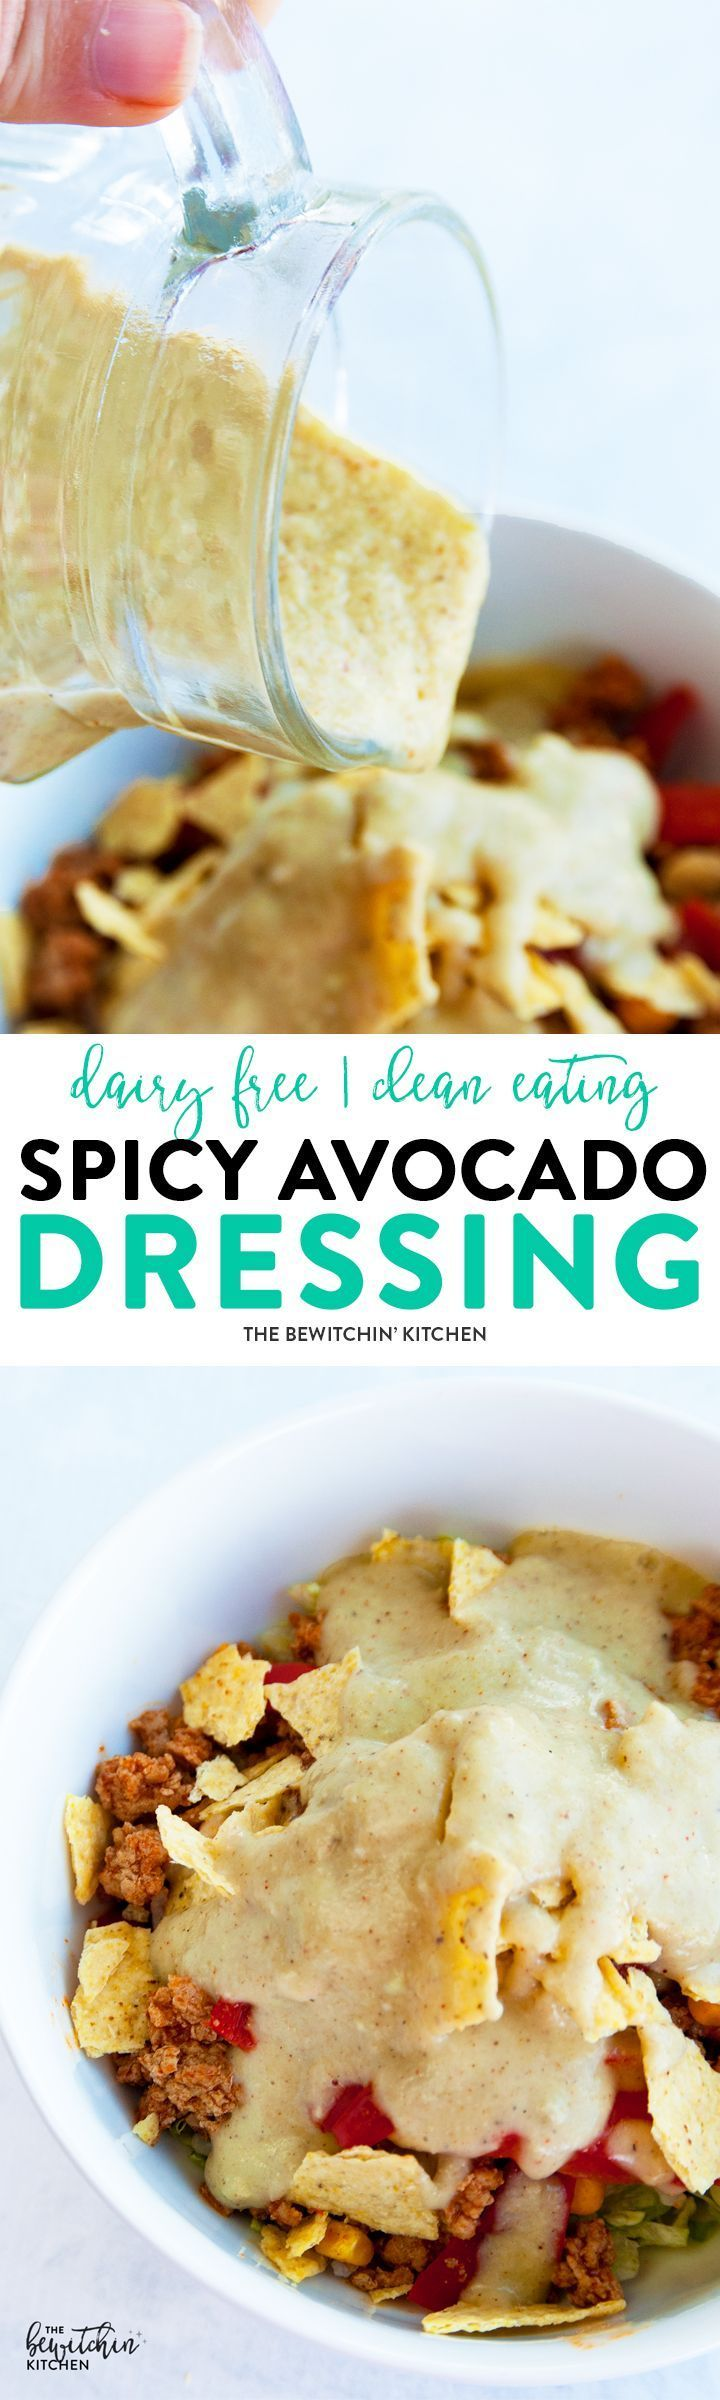 Spicy Avocado Dressing easy homemade salad dressing recipe that's creamy, yet dairy free. It makes a great fry dip too! Whole30, Paleo and 21 Day Fix approved! via @RandaDerkson